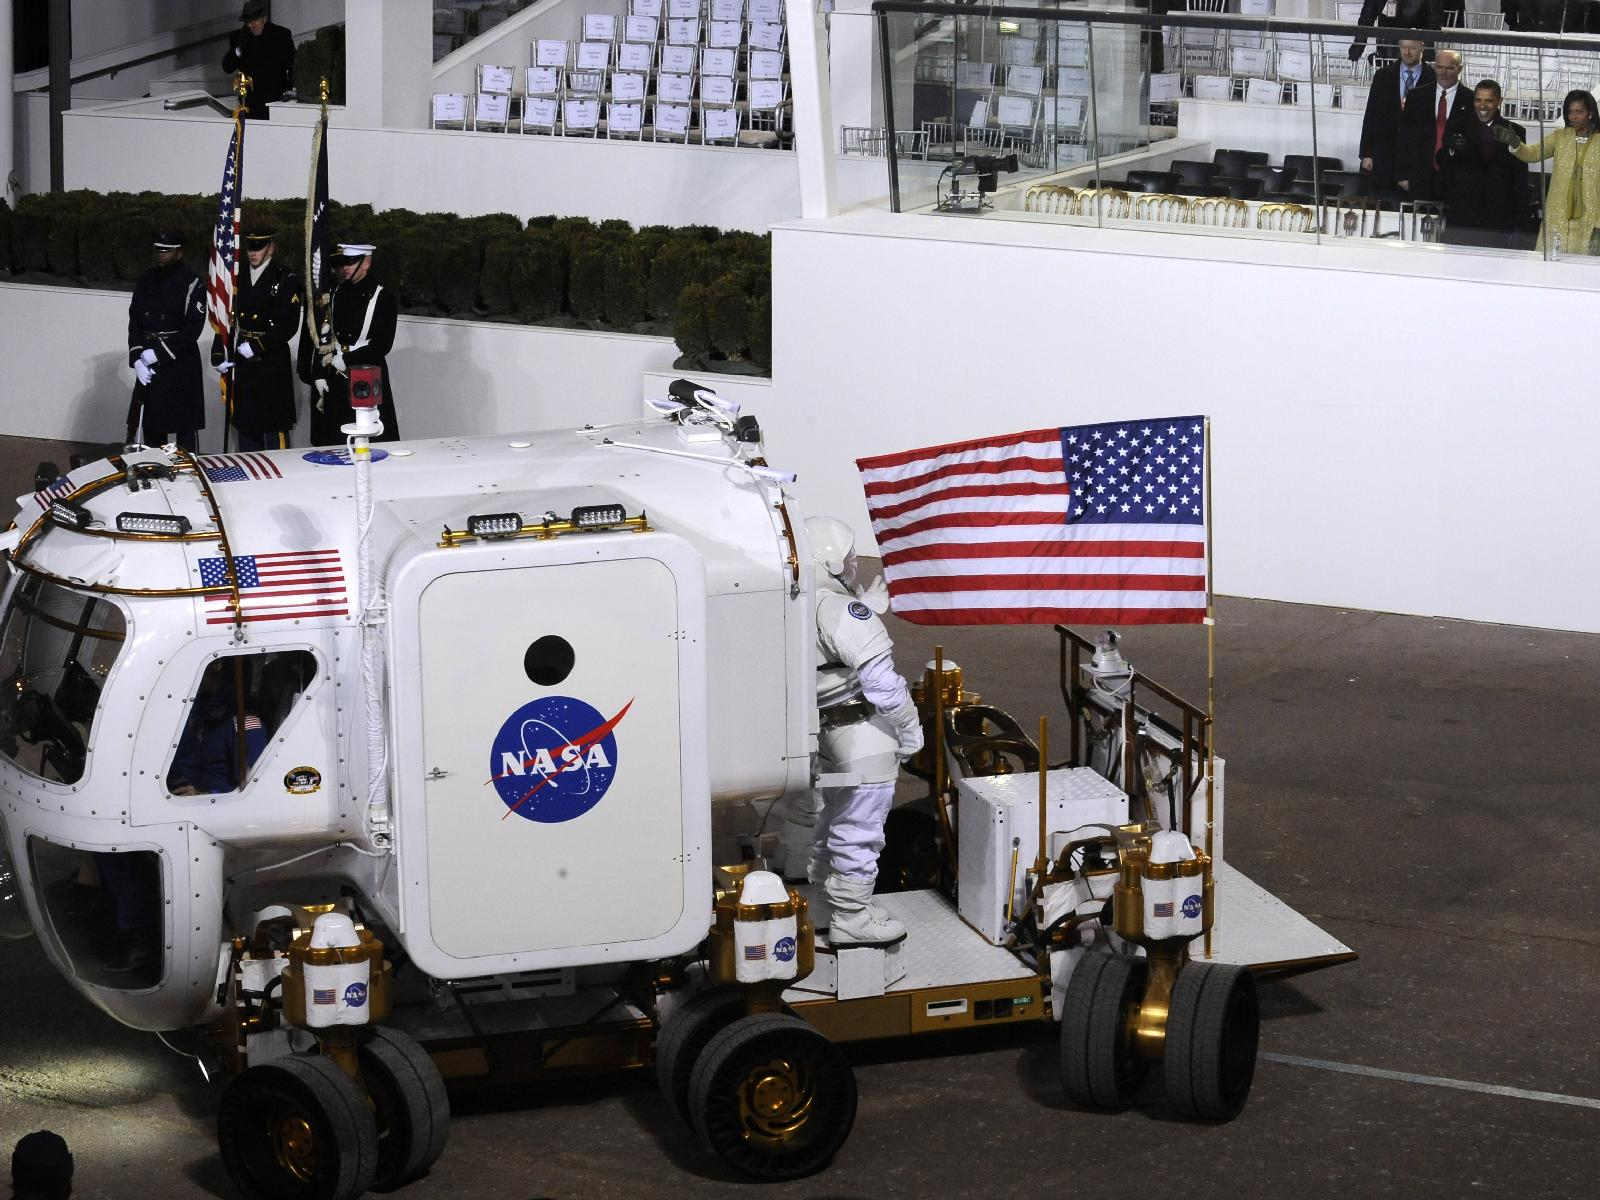 President Barack Obama, Michelle Obama and Vice President Joe Biden watch as the NASA Lunar Electric Rover stops in front of the Presidential reviewing stand on Pennsylvania Avenue in front of the White House in Washington, Tuesday, Jan. 20, 2009.